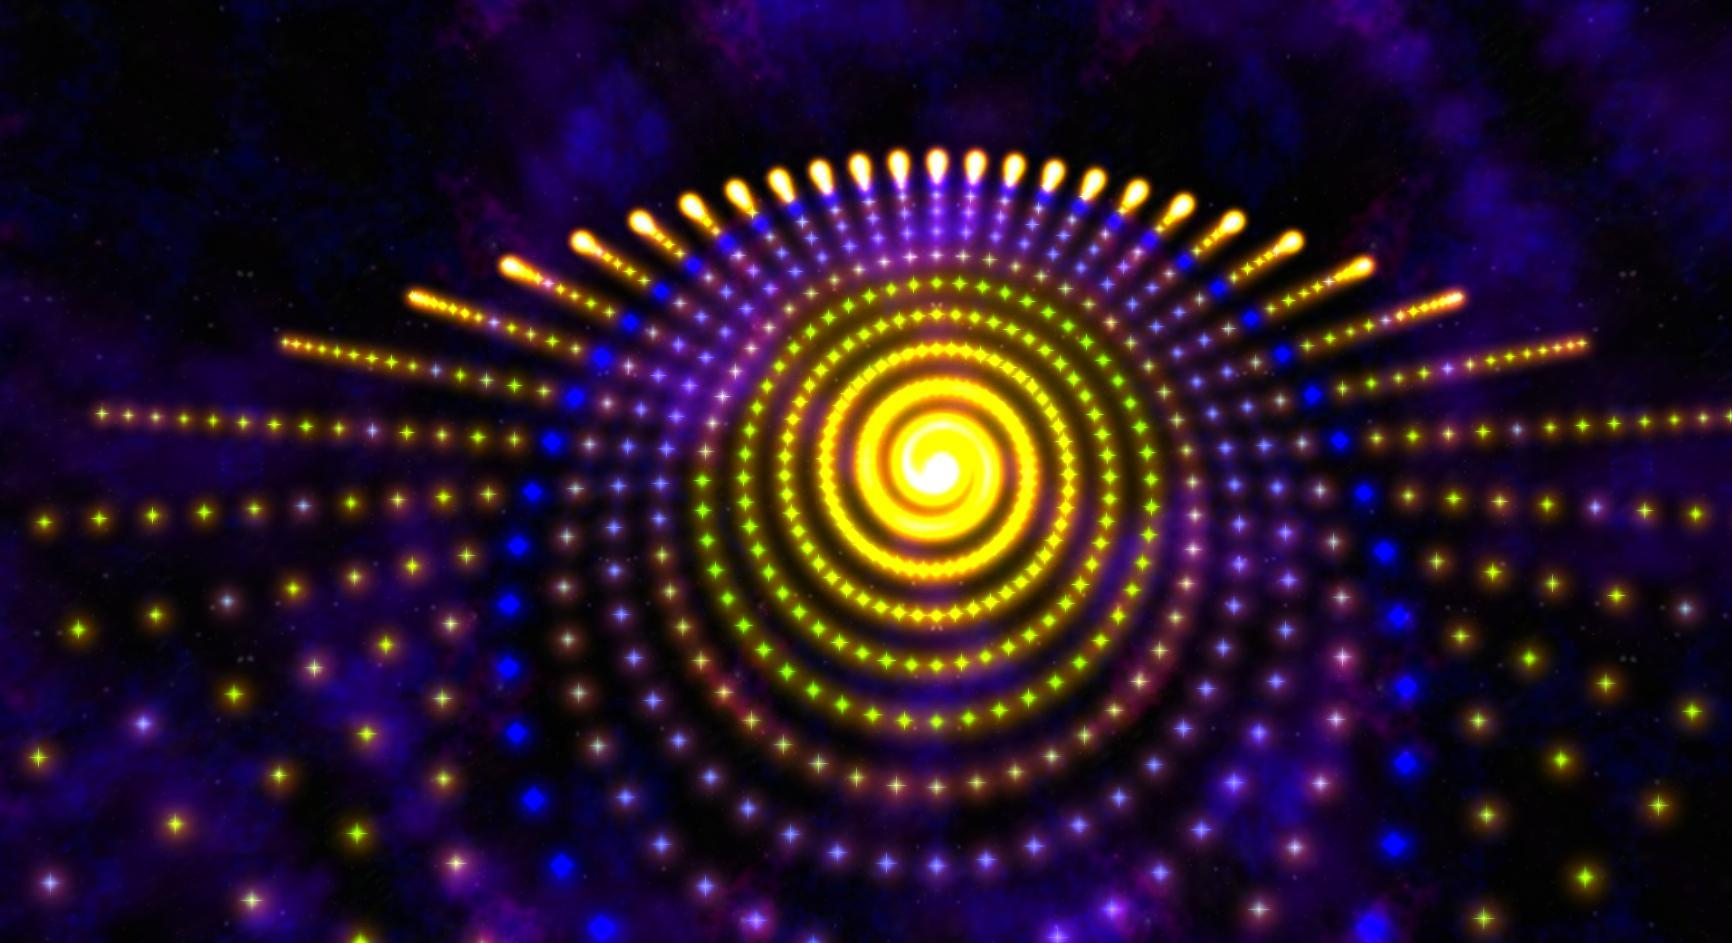 Morphing Galaxy Music visualizer & Live Wallpaper for